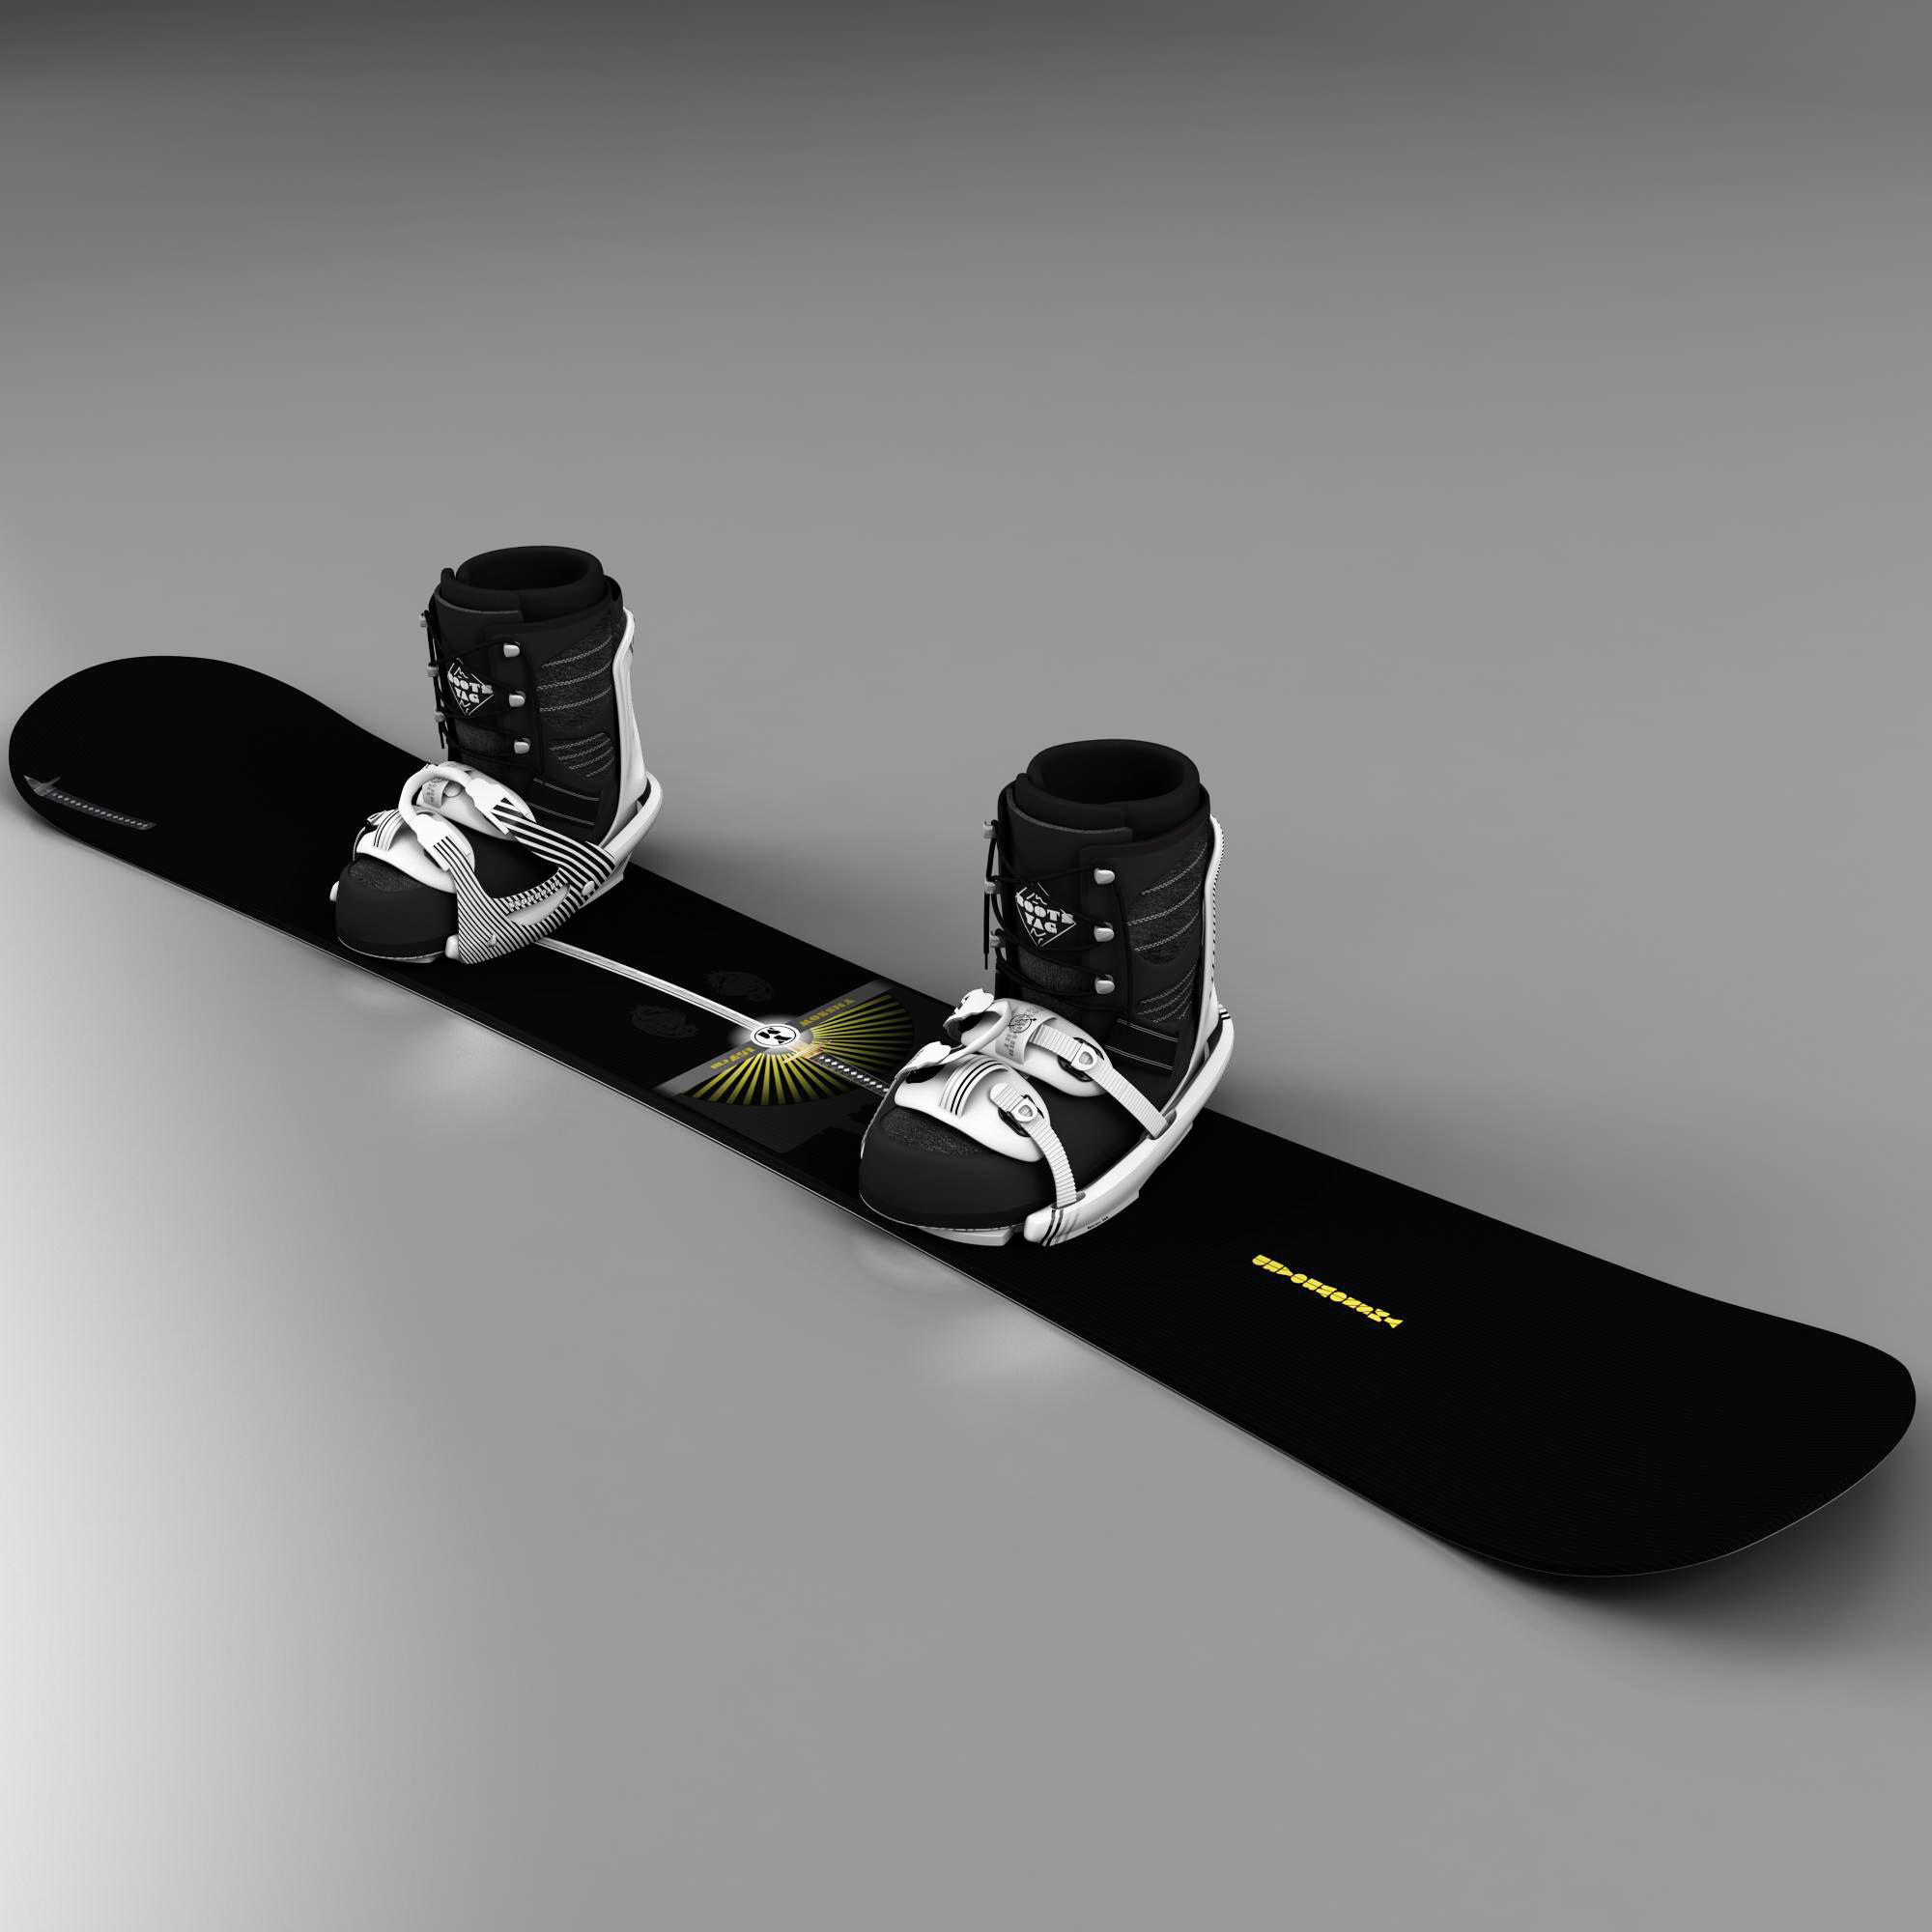 qar board 3d model 3ds max fbx ma mb obj 157638